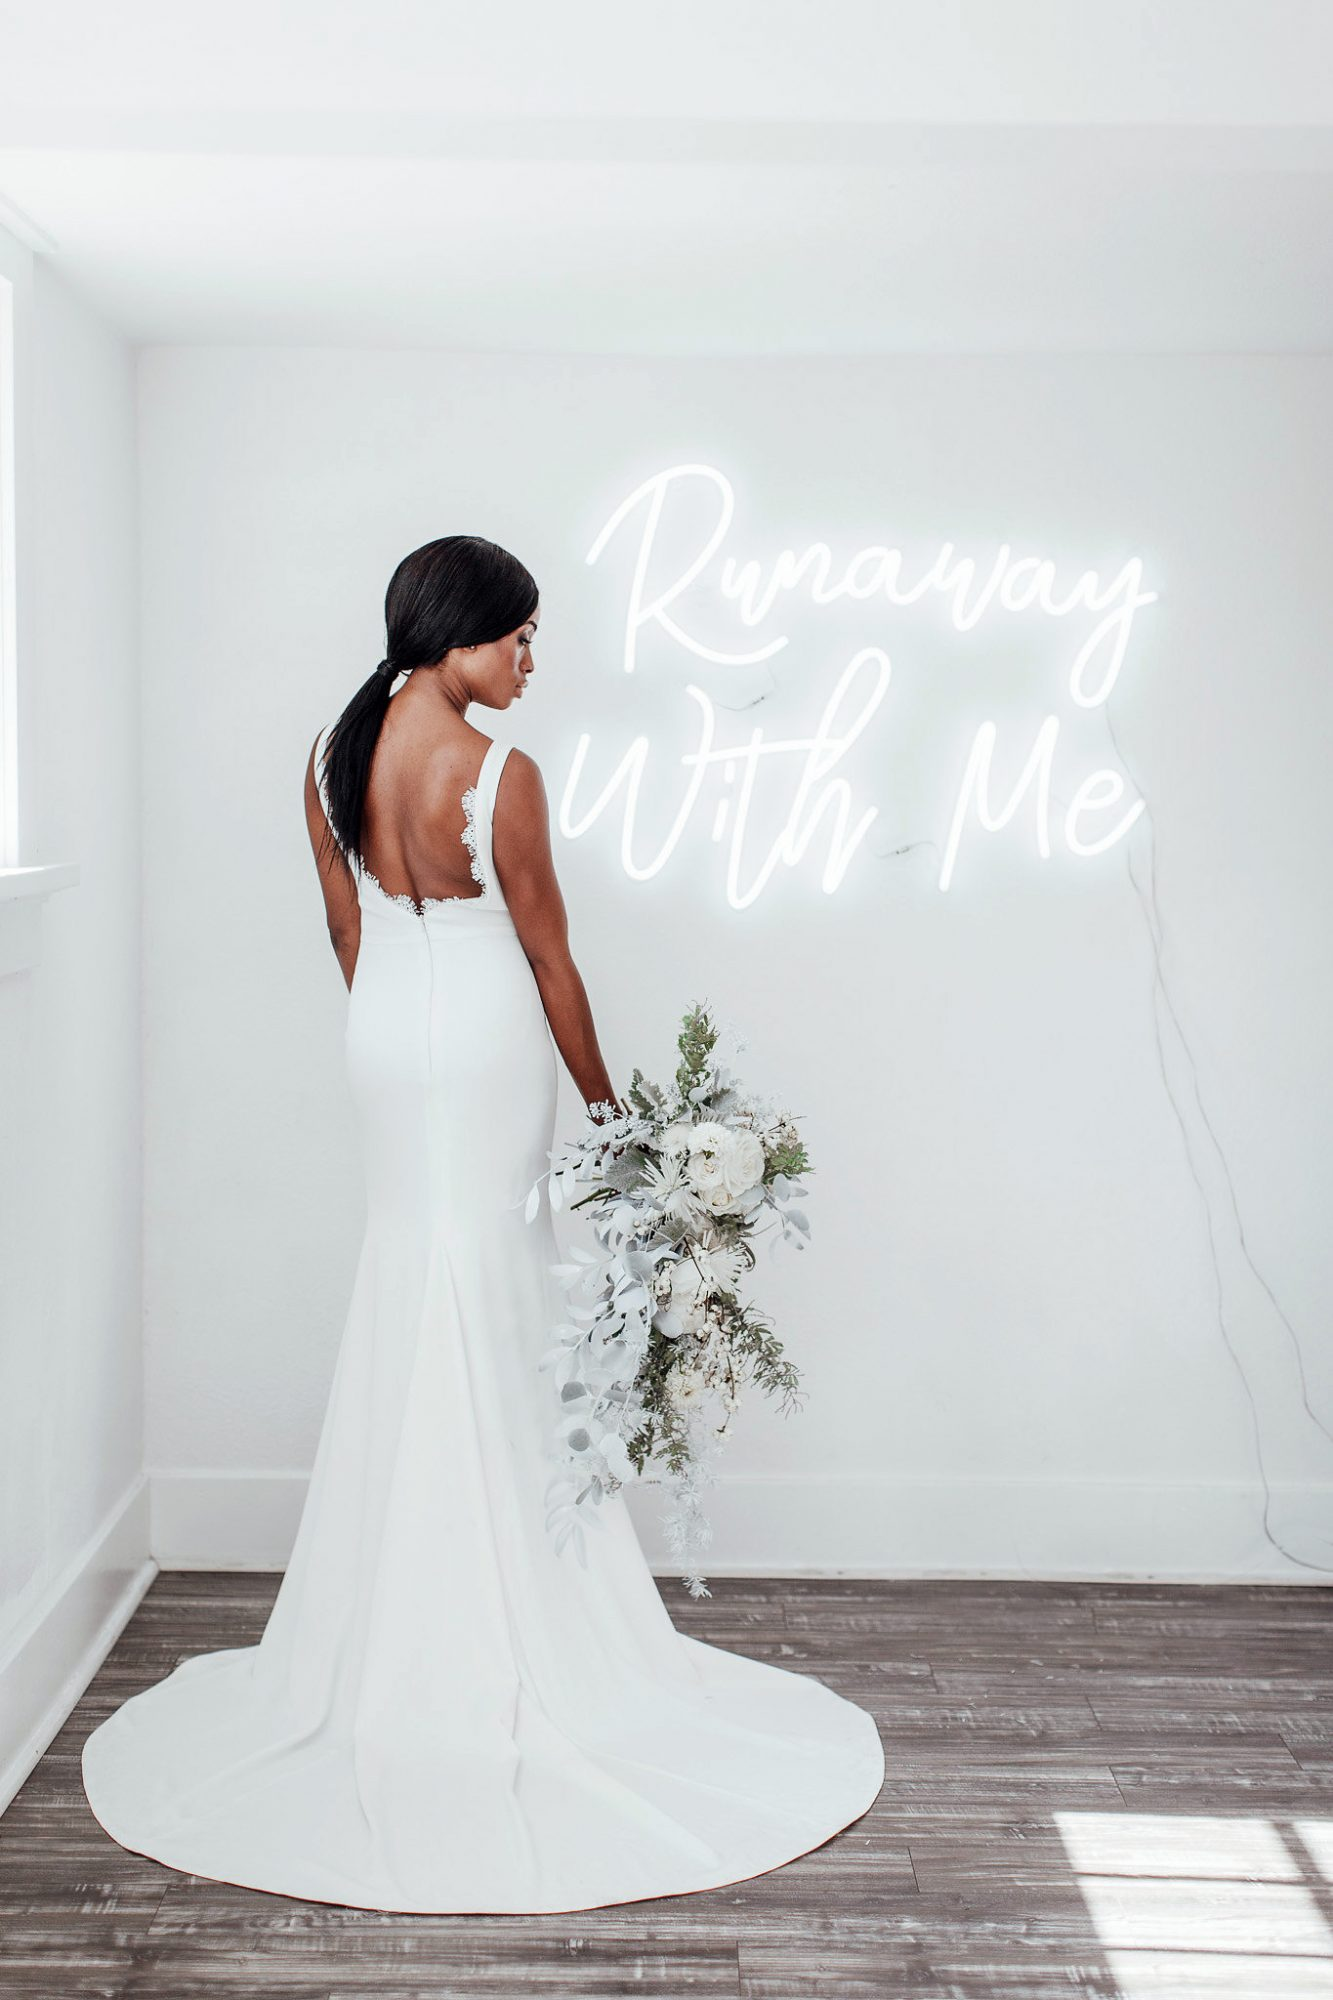 runaway with me neon sign with bride and bouquet